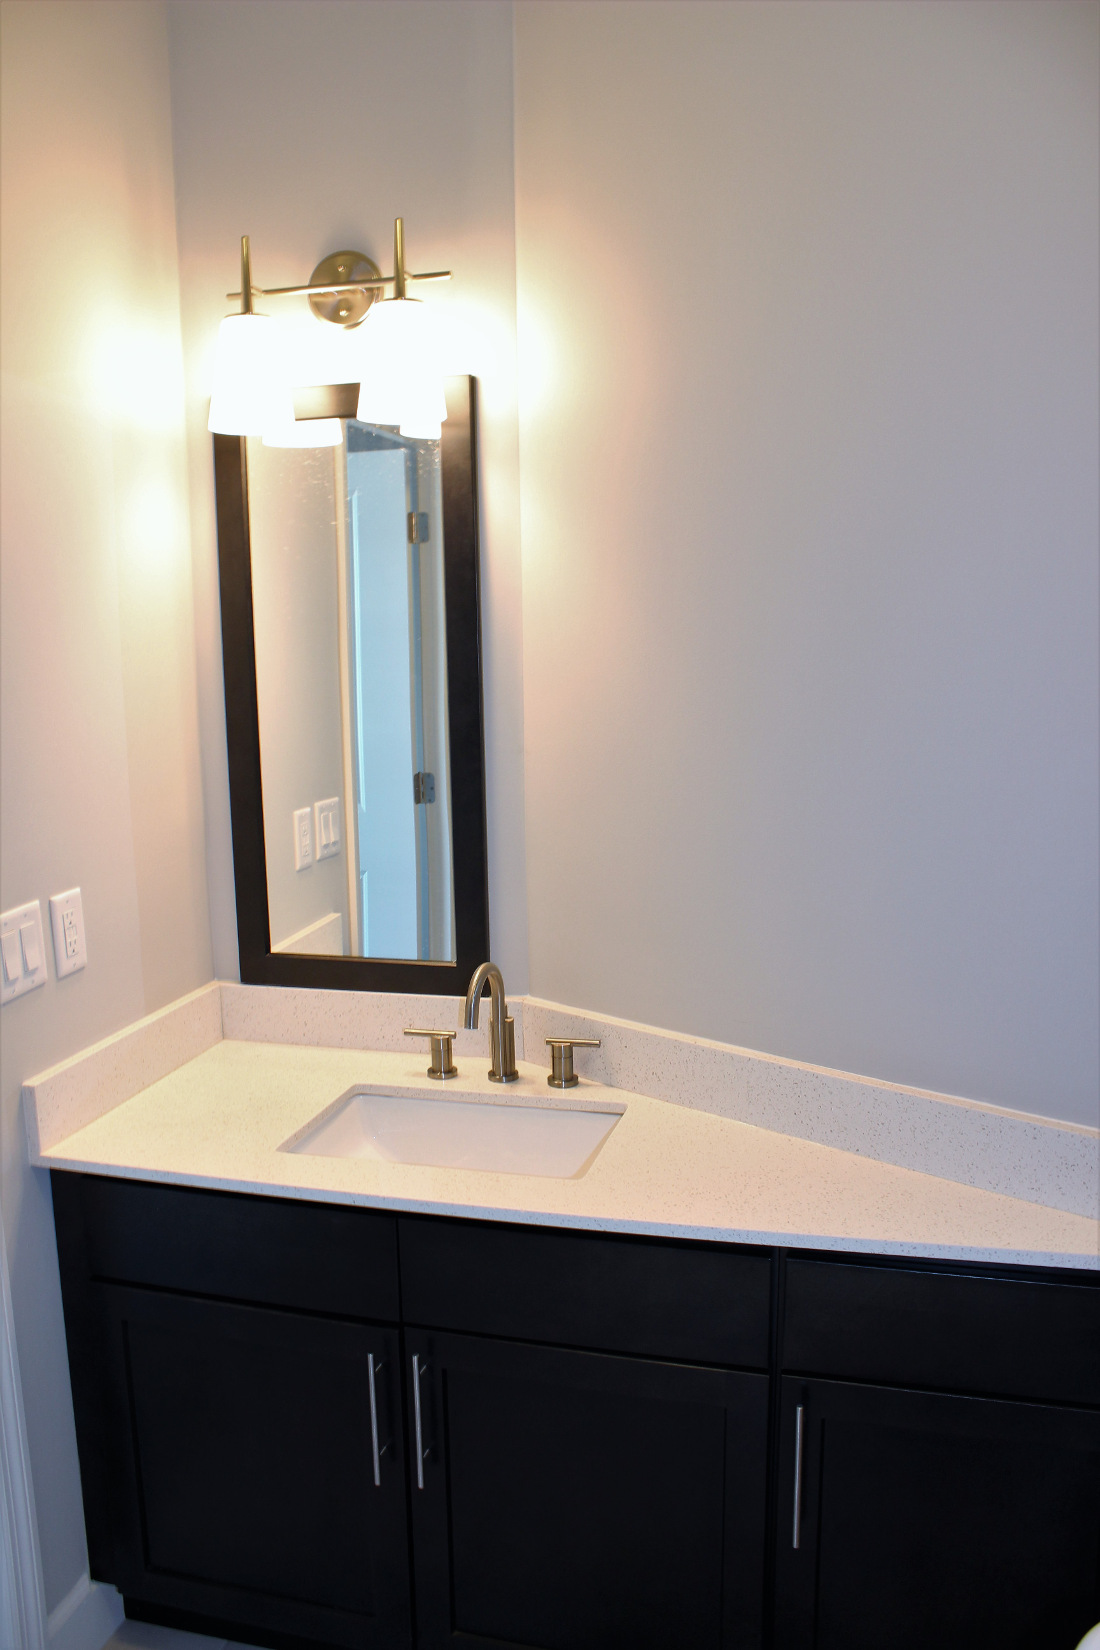 B1 Bathroom at the Vue at Creve Coeur Apartments in Creve Coeur, MO